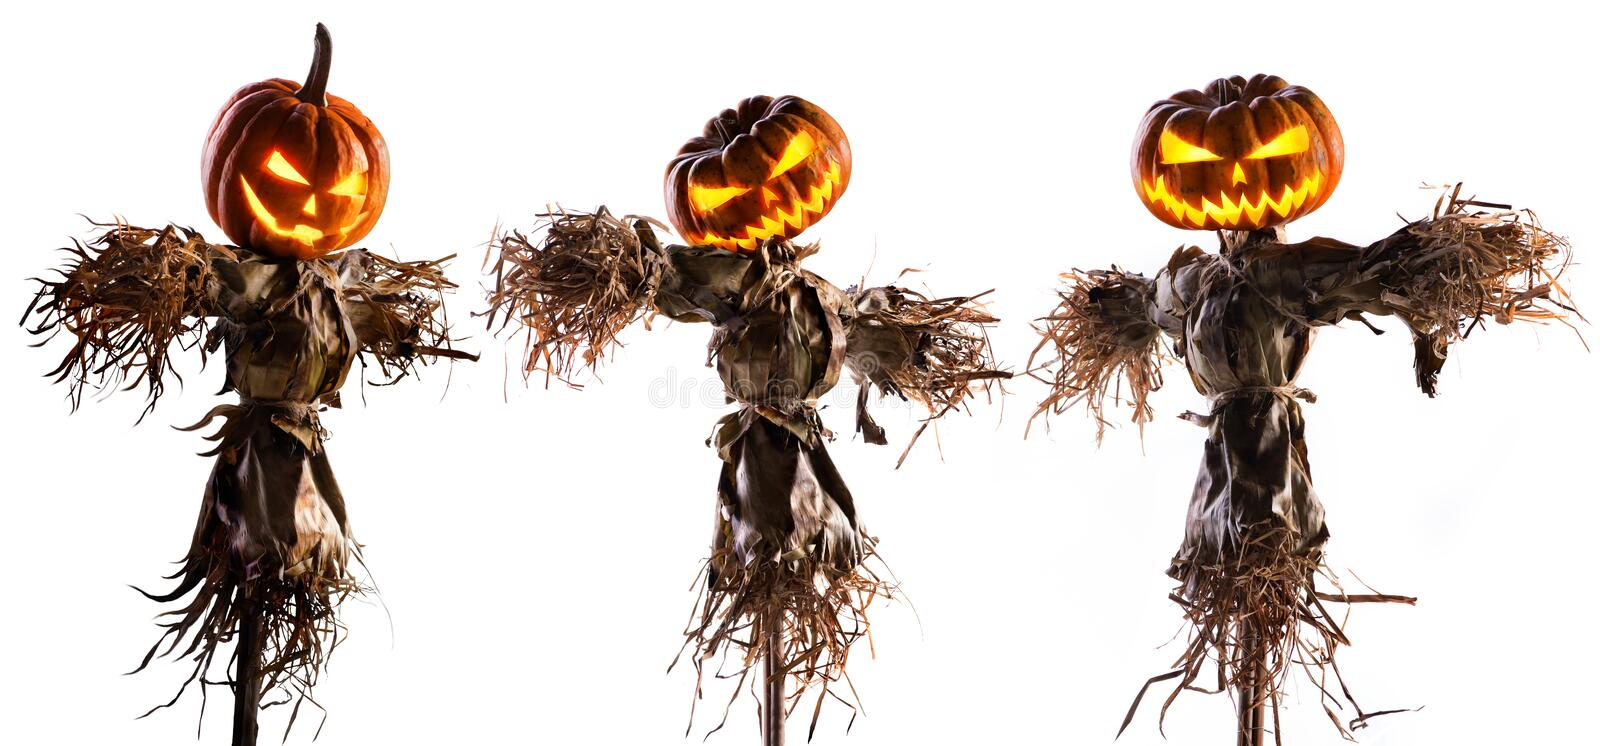 Halloween pumpkin scarecrow isolated on white background royalty free stock photo